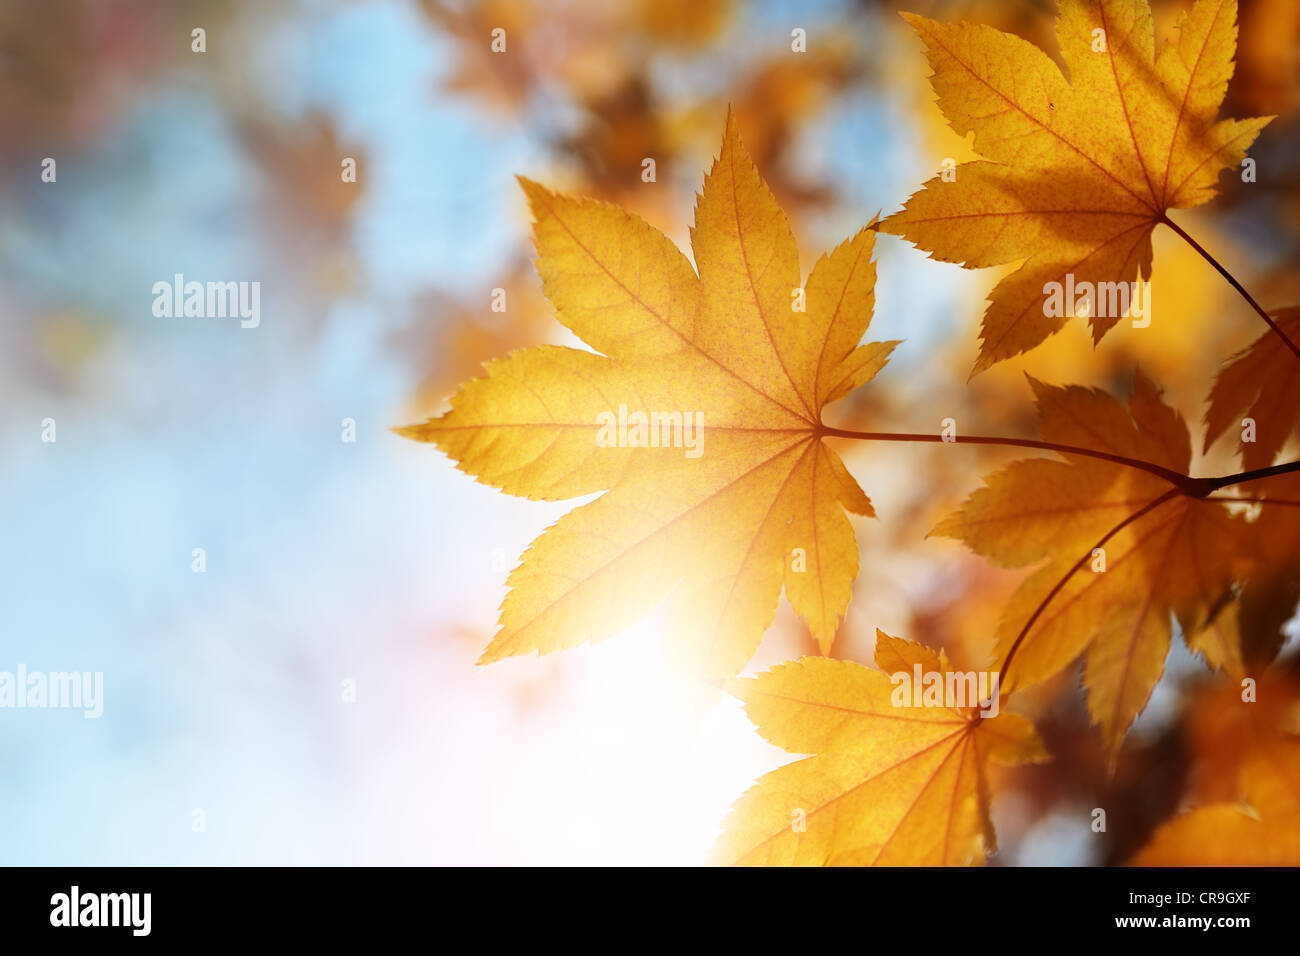 autumn leaves against the blue sky and sun, selective focus Stock Photo